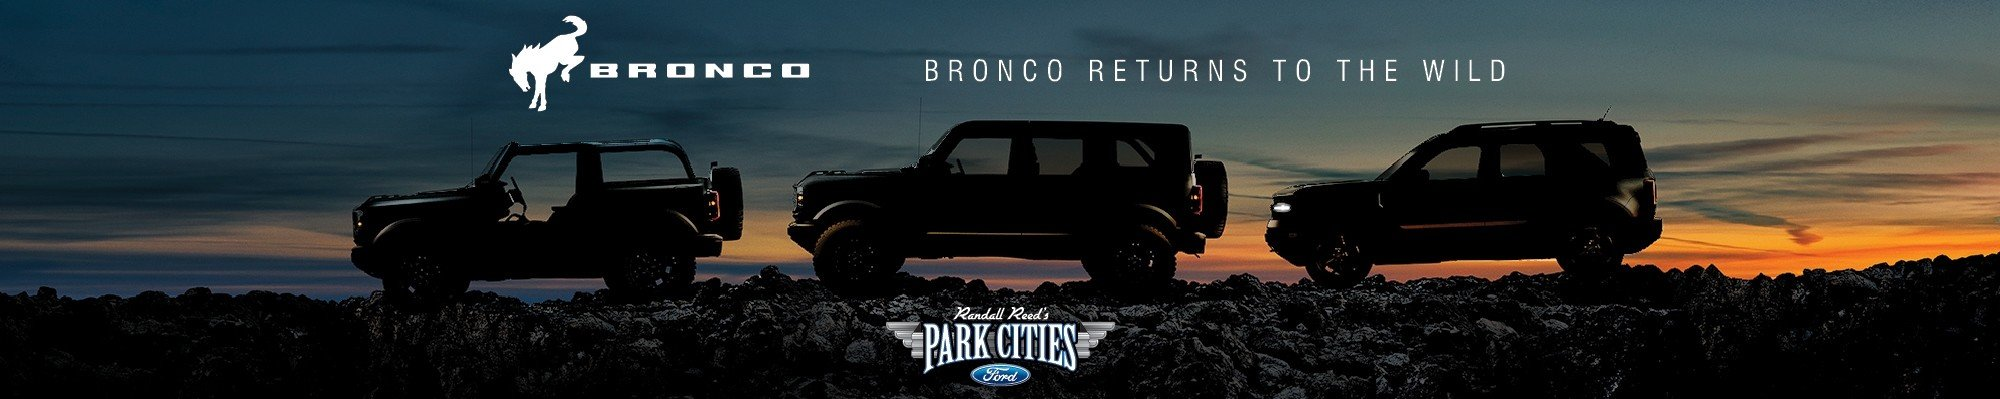 New 2021 Ford Bronco Now Available at Park Cities Ford of Dallas - Your Dallas Ford Dealer